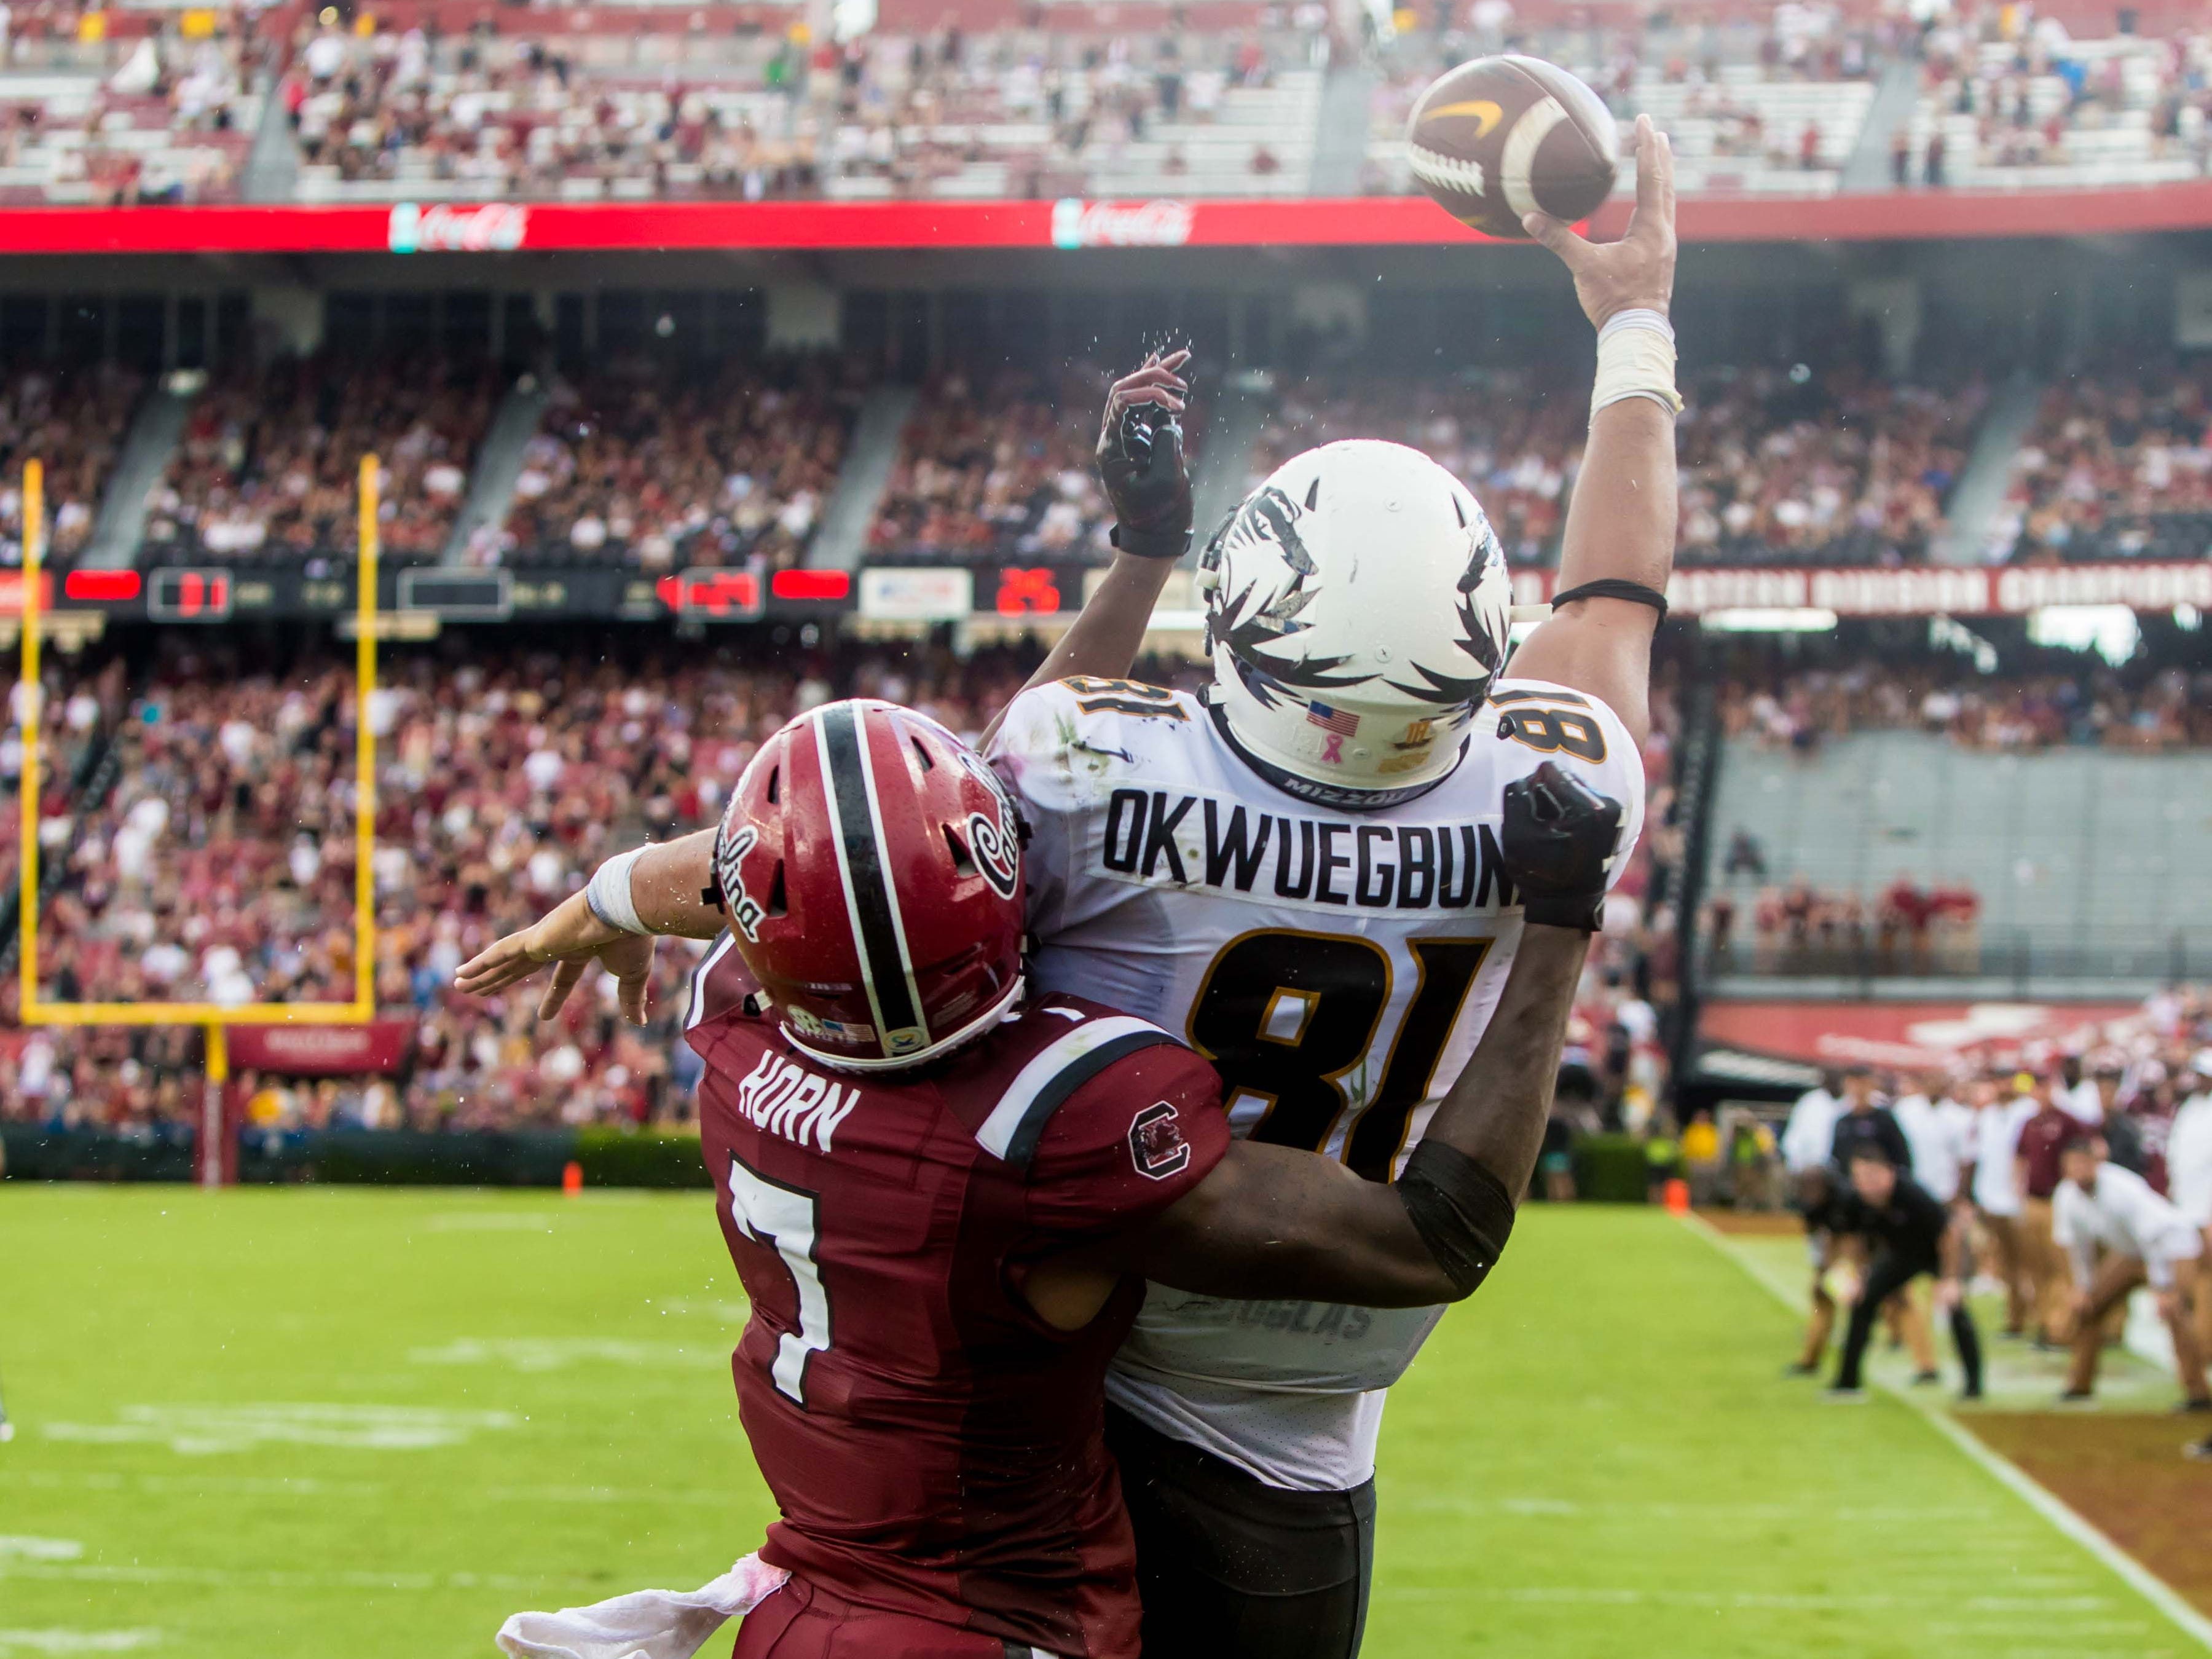 Missouri Tigers tight end Albert Okwuegbunam attempts to make a catch in the end zone as South Carolina Gamecocks defensive back Jaycee Horn defends in the second half at Williams-Brice Stadium.